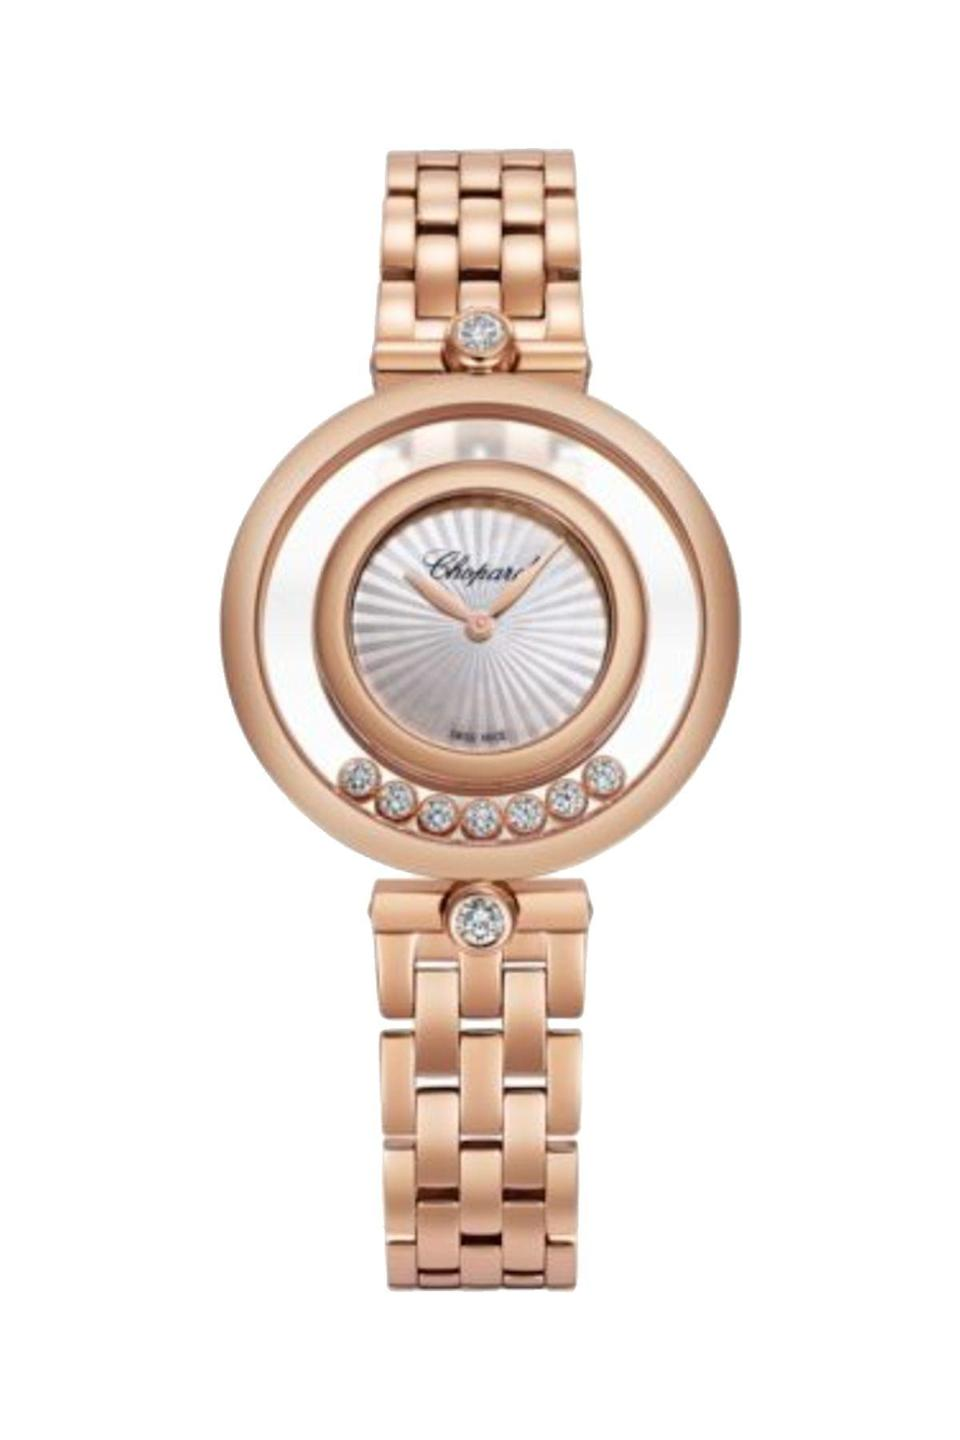 """<p><strong>Chopard</strong></p><p>chopard.com</p><p><strong>$22200.00</strong></p><p><a href=""""https://www.chopard.com/us/happy-diamonds-icons-209426-5002"""" rel=""""nofollow noopener"""" target=""""_blank"""" data-ylk=""""slk:Shop Now"""" class=""""link rapid-noclick-resp"""">Shop Now</a></p><p>Dainty and delicate, this watch will make you smile every time you gaze at it. </p>"""